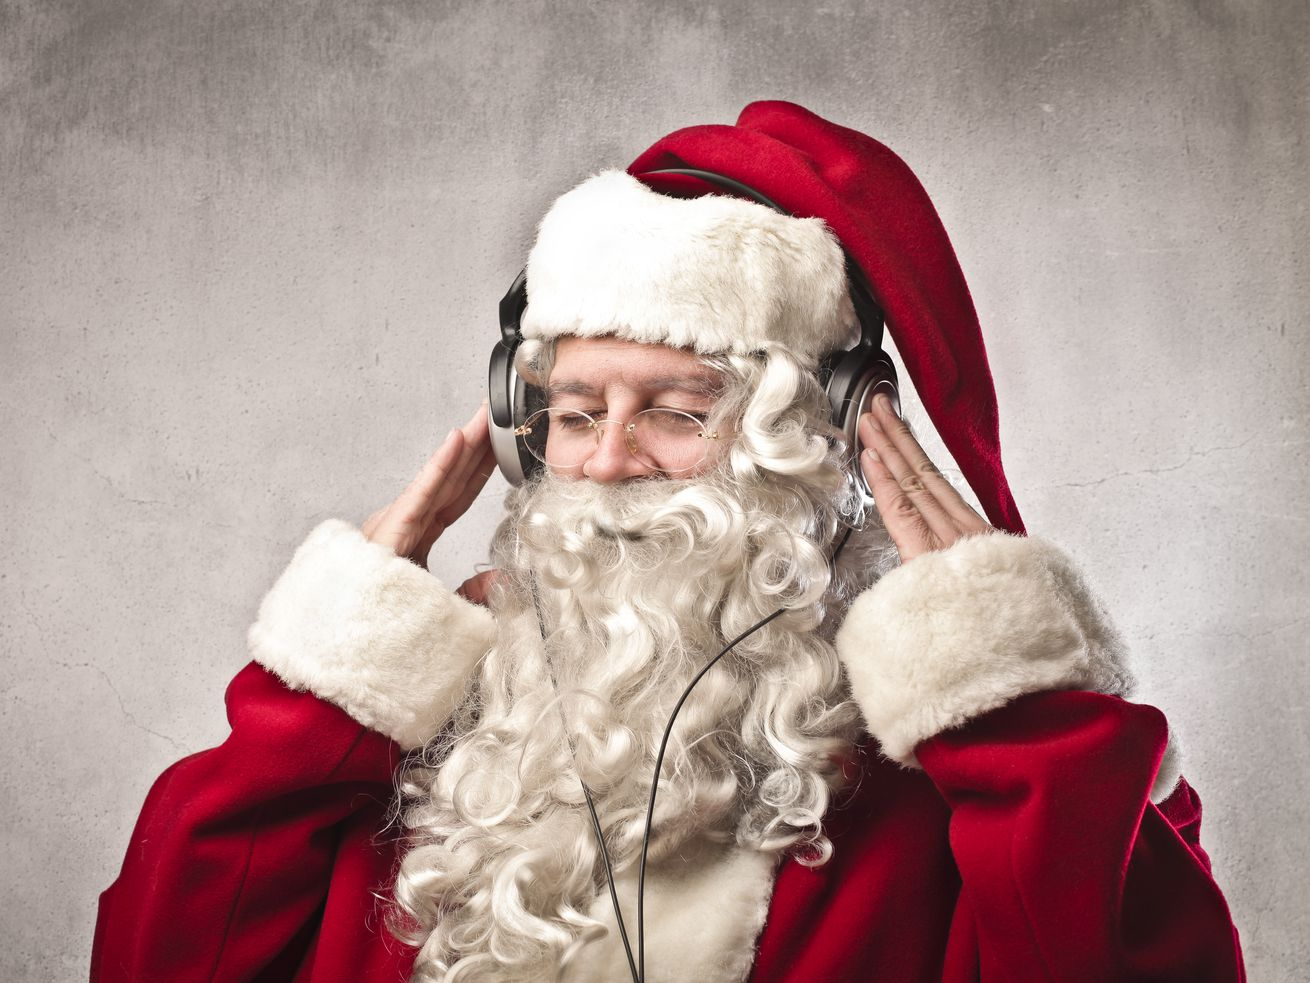 Santa listens to some awesome Christmas tunes.